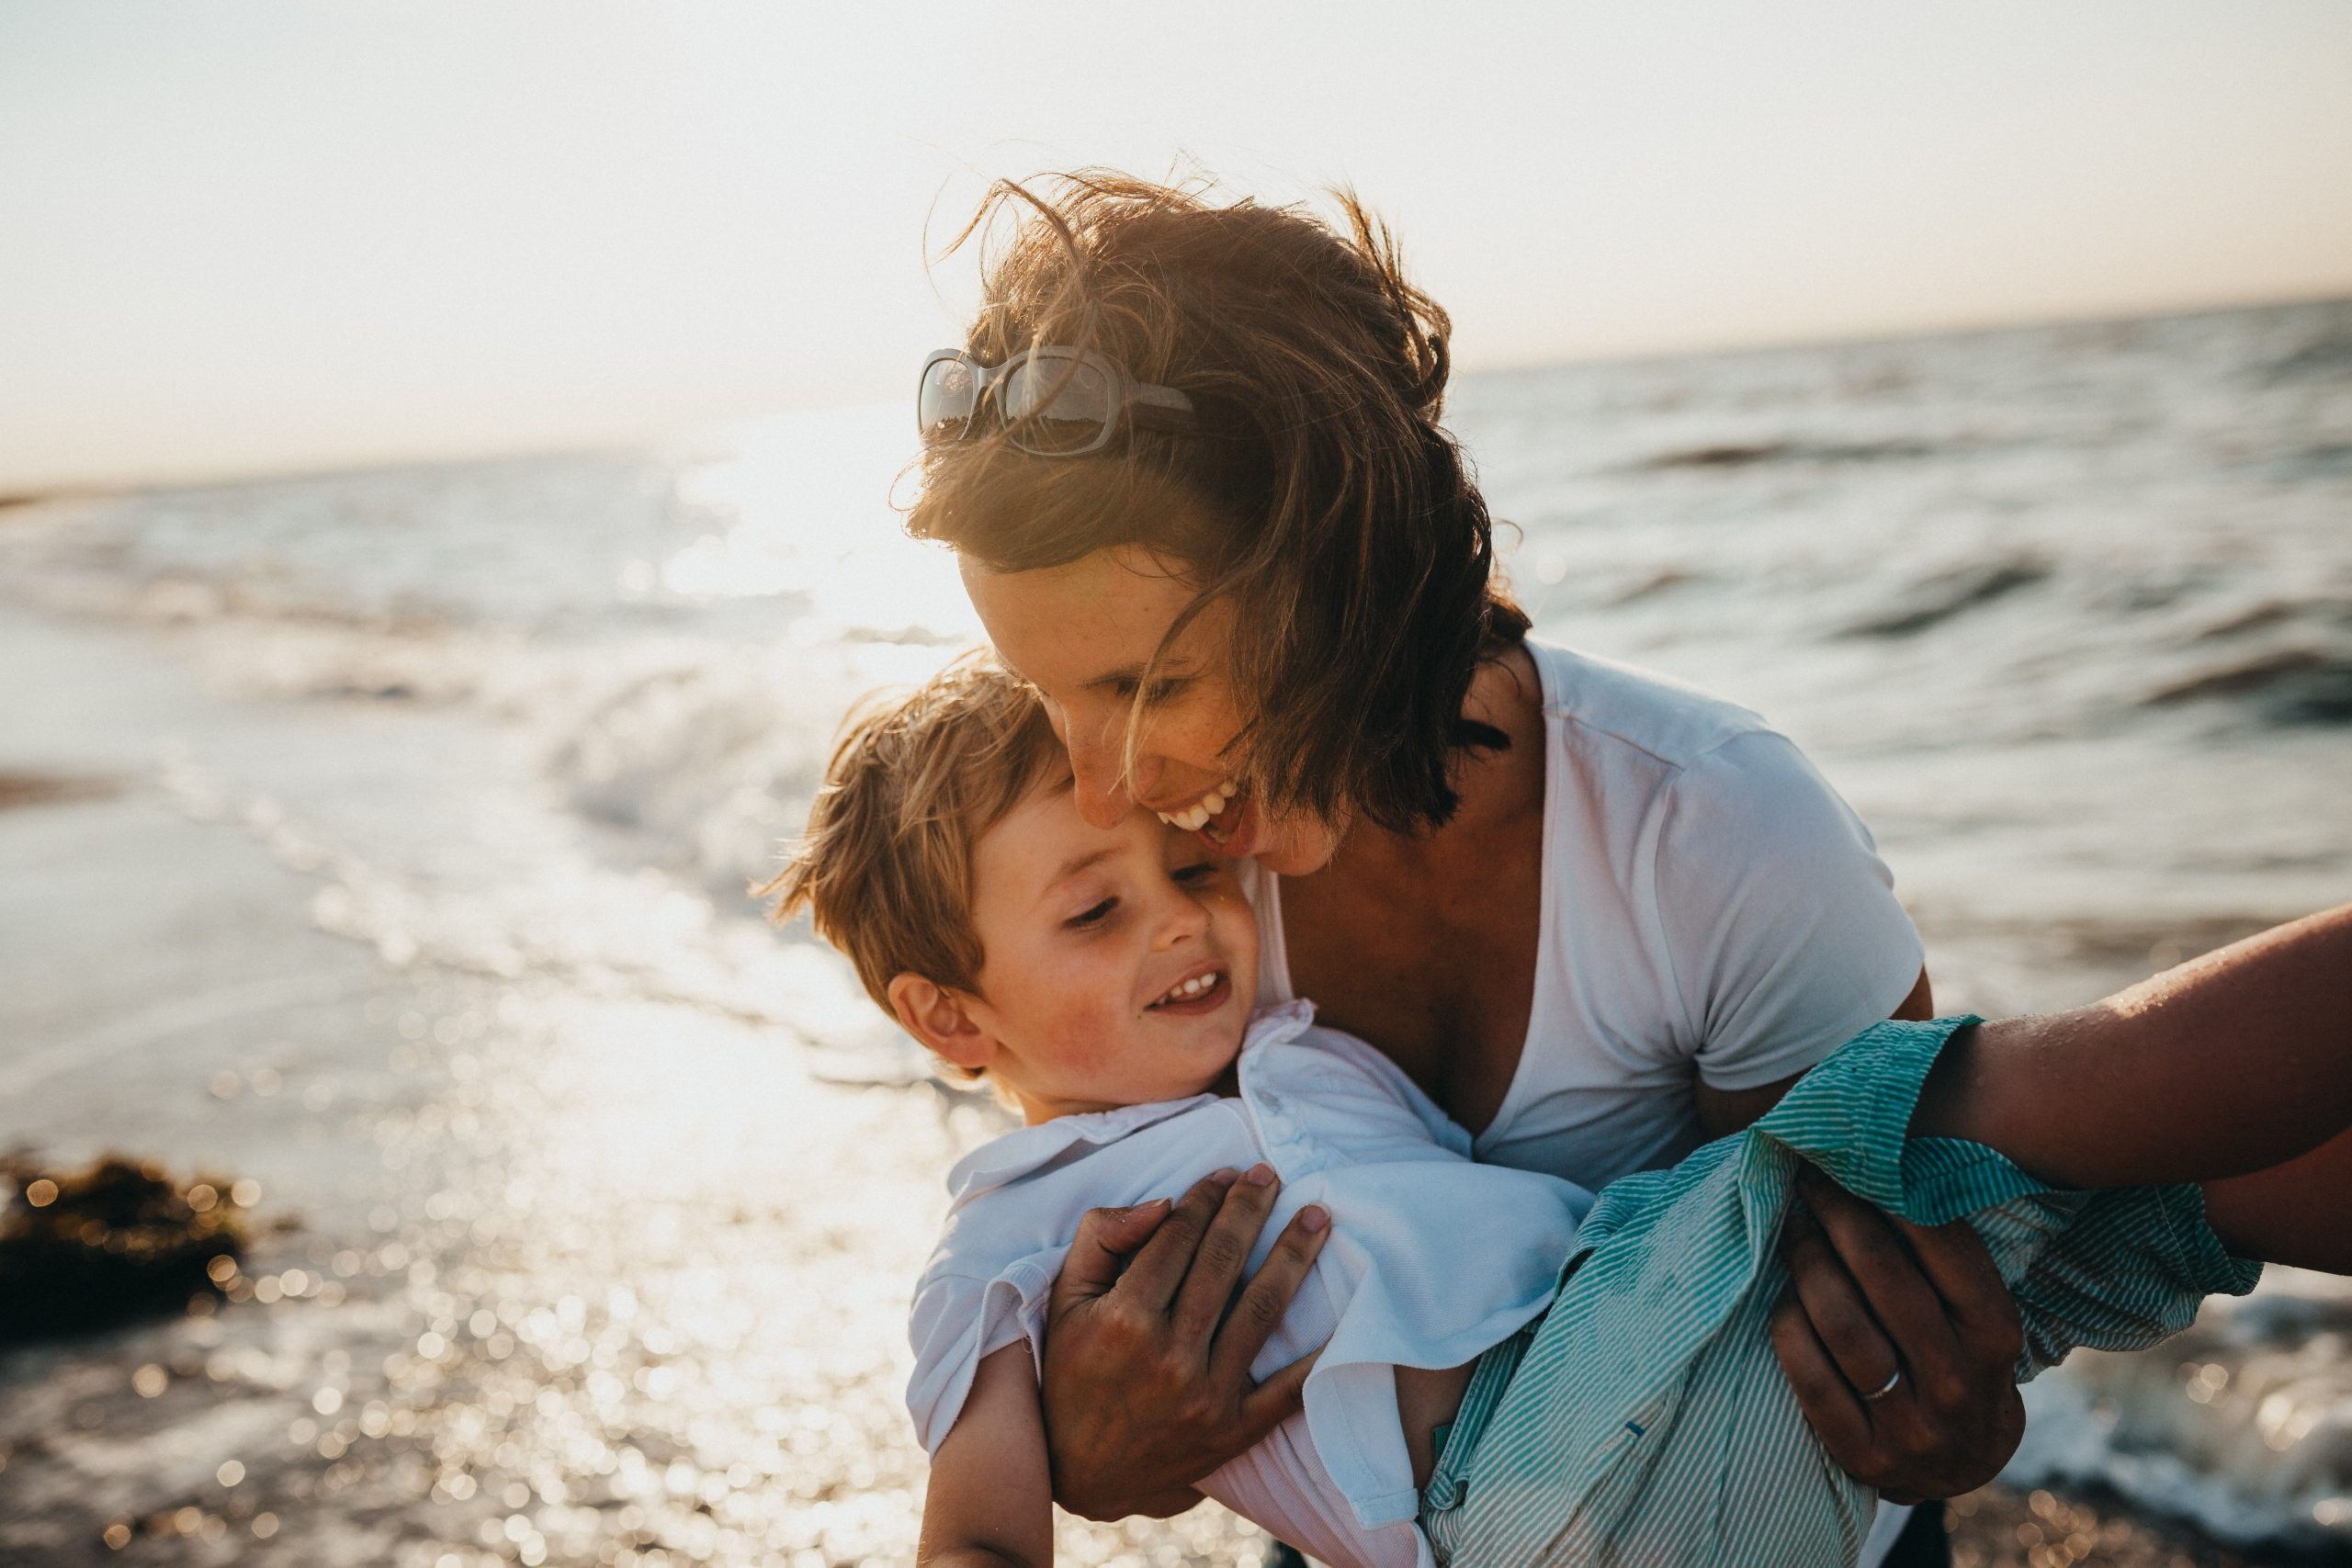 5 things I wish I would have known before becoming a single parent